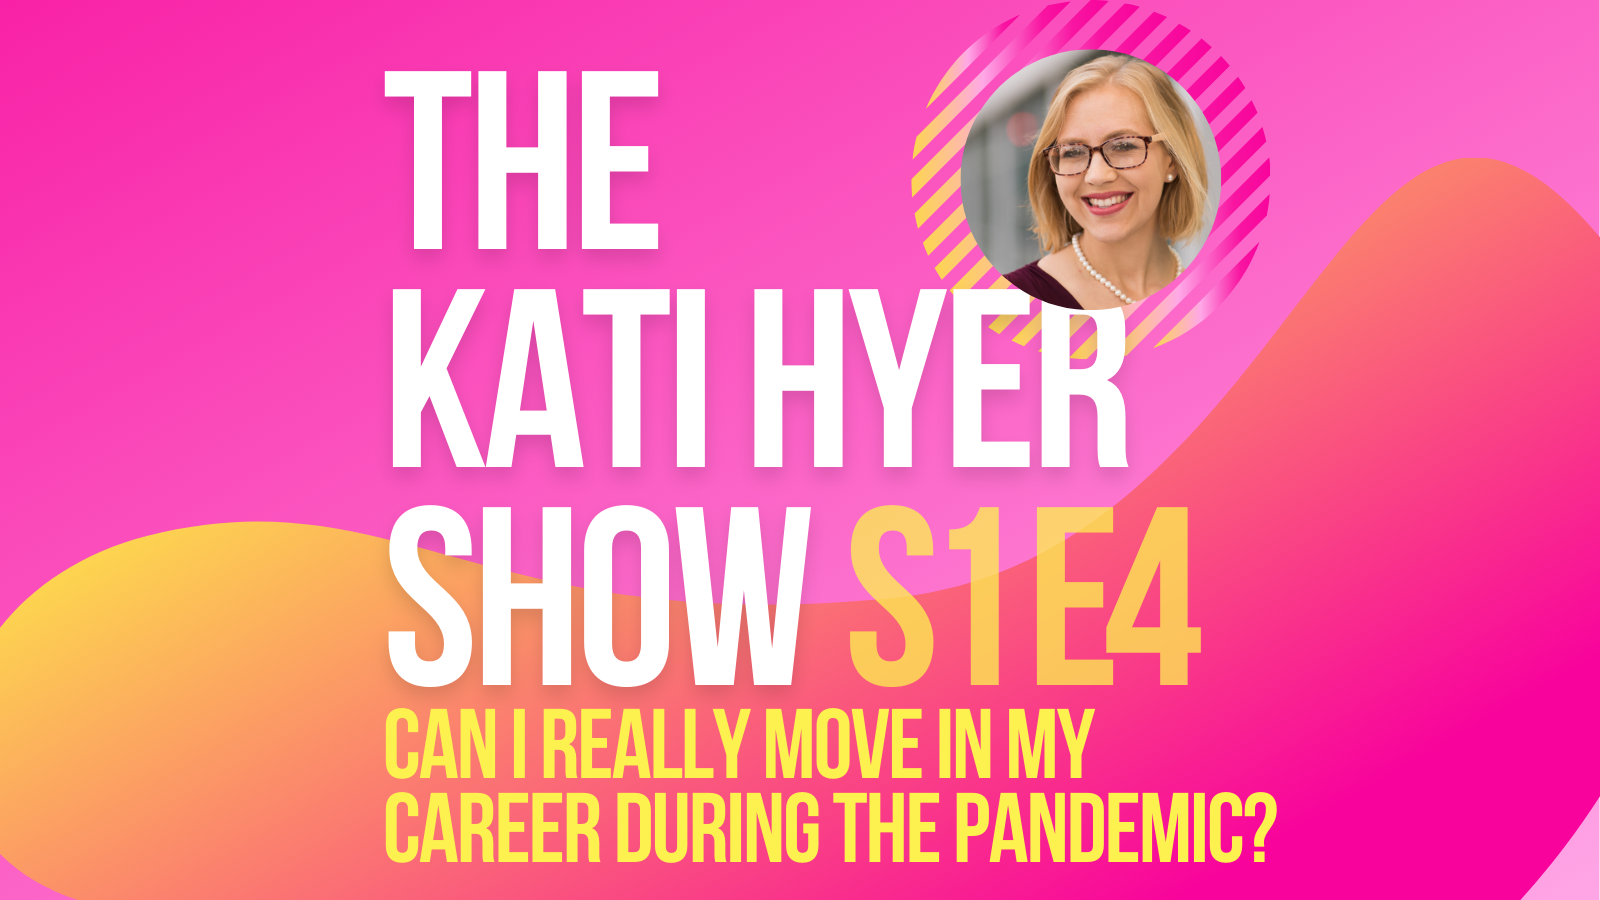 How to move in your career during the pandemic